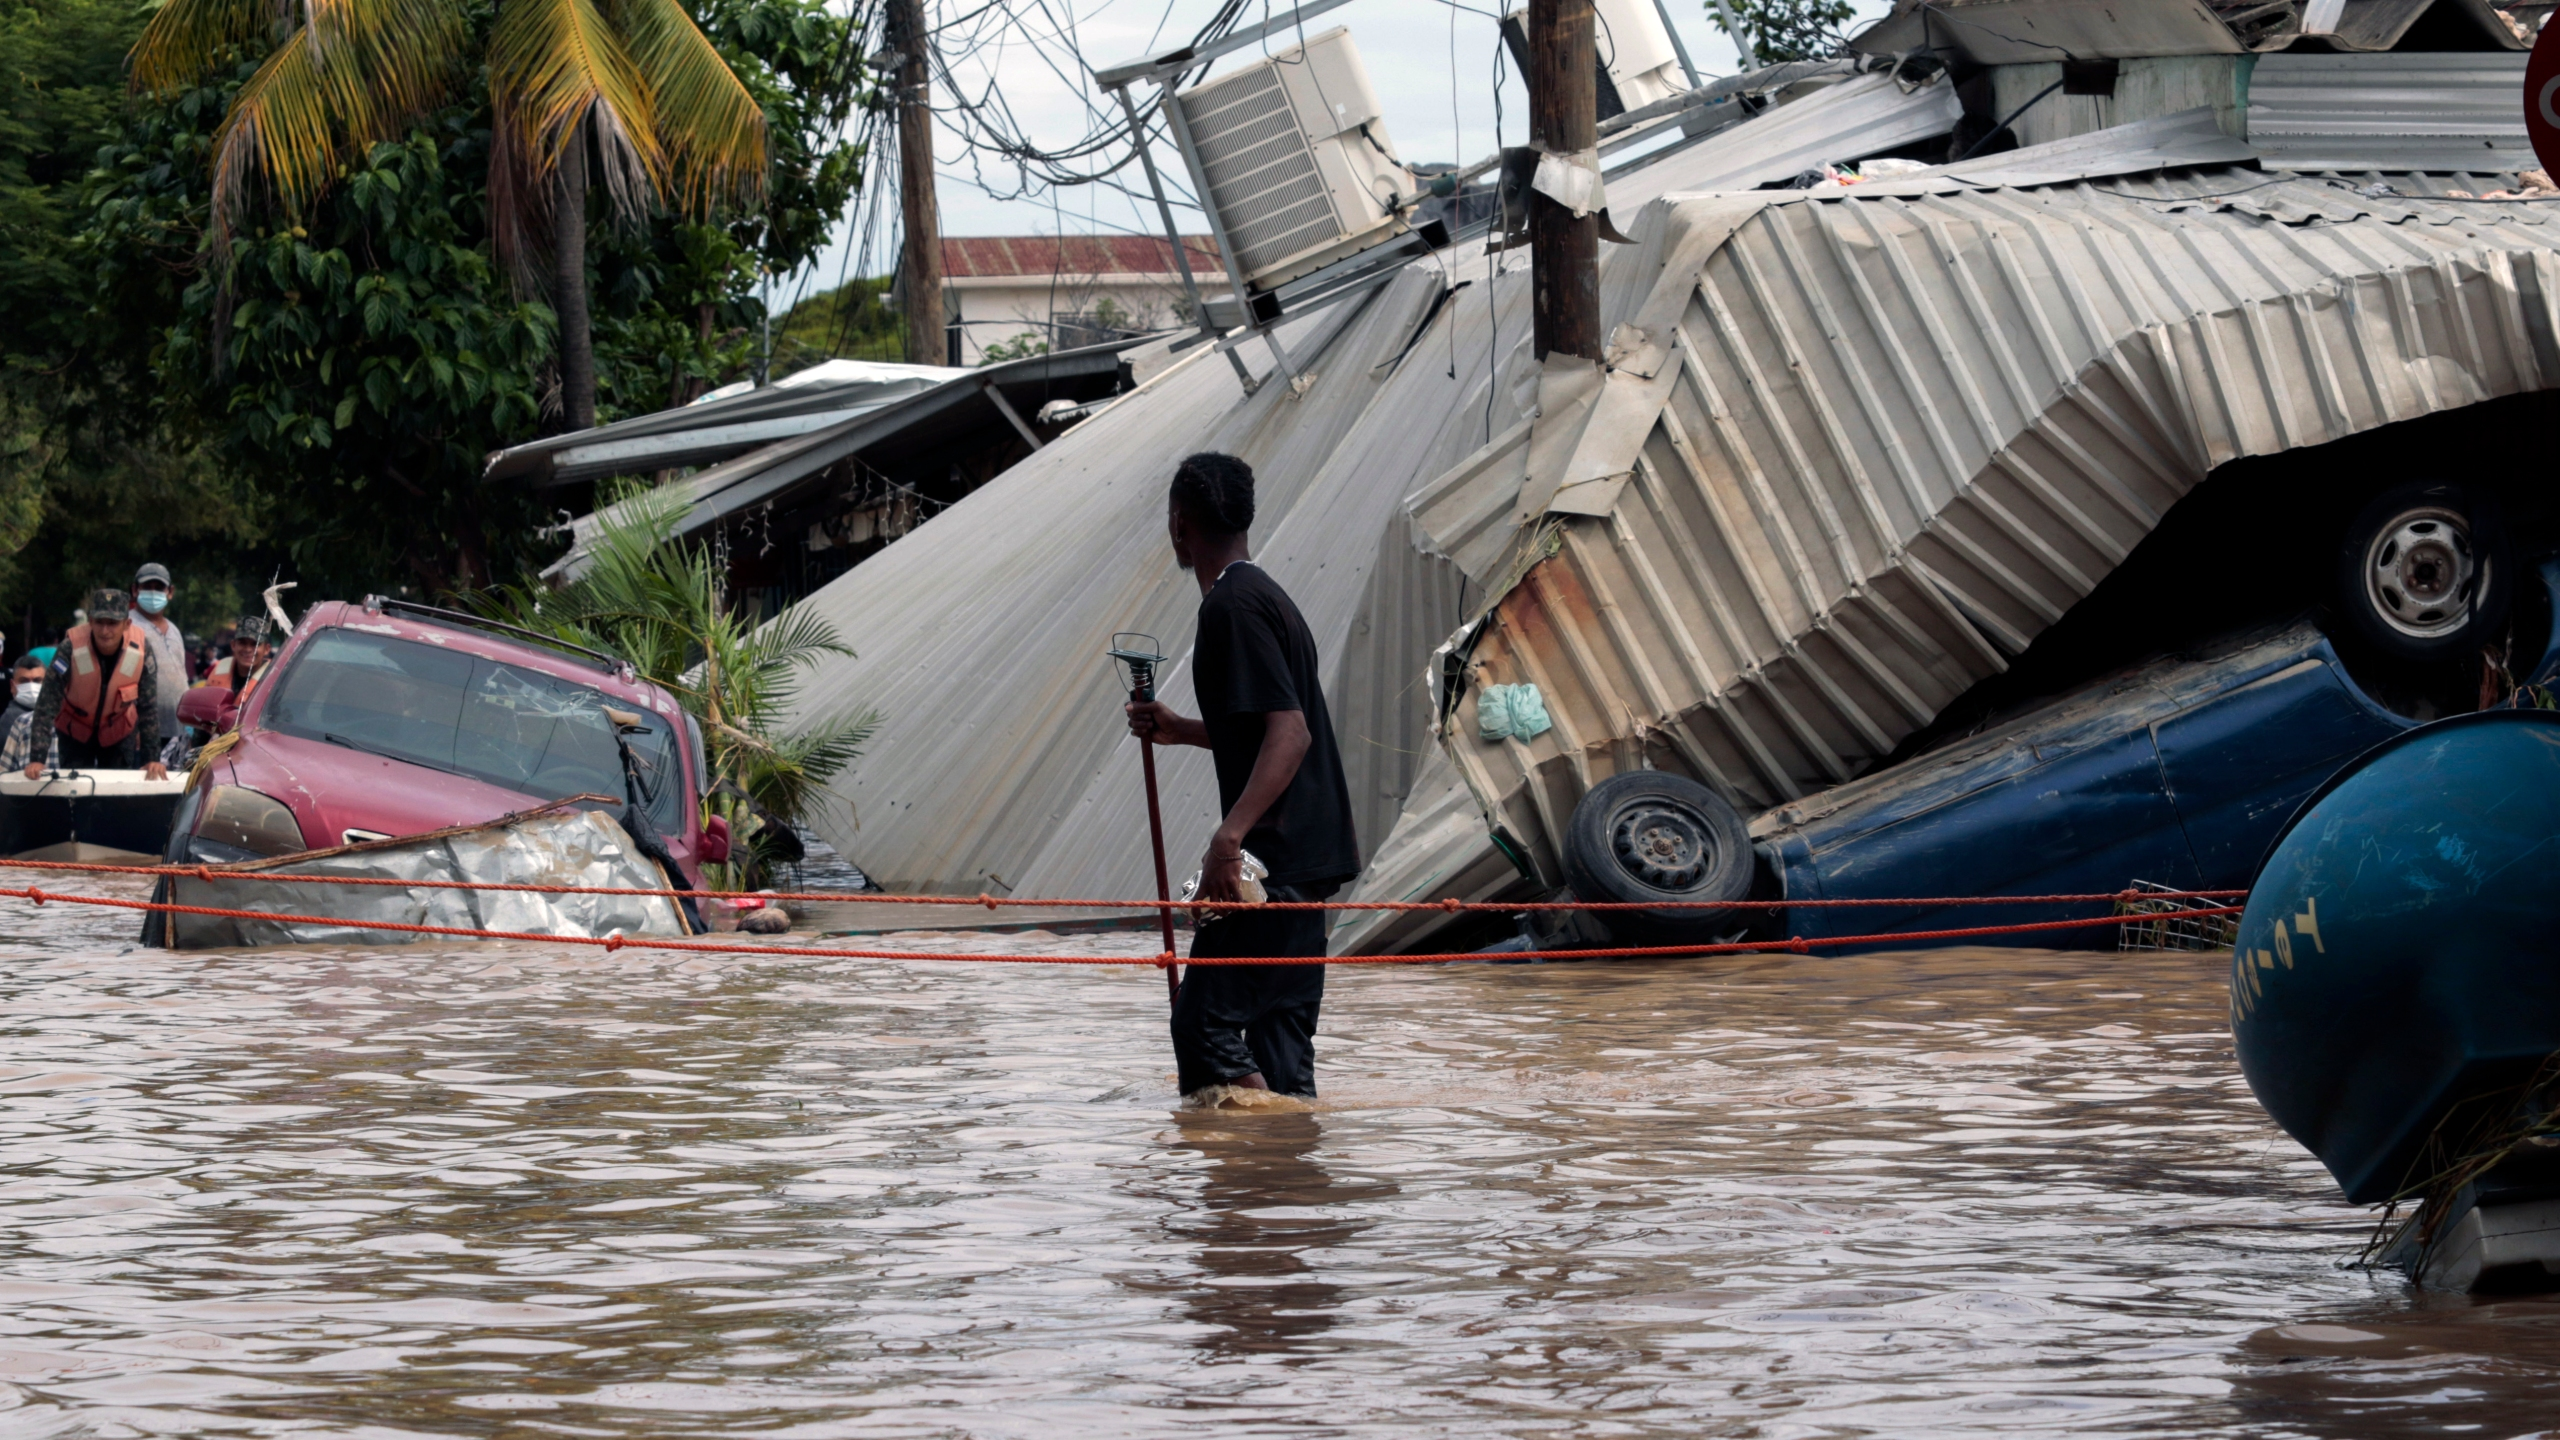 In this Nov. 6, 2020 file photo, a resident walking through a flooded street looks back at storm damage caused by Hurricane Eta in Planeta, Honduras. Flooded out Honduran and Guatemalan families stranded on rooftops in the most marginalized neighborhoods after the passage of hurricanes Eta and Iota portend a new wave of migration, observers across the region say. (AP Photo/Delmer Martinez, File)